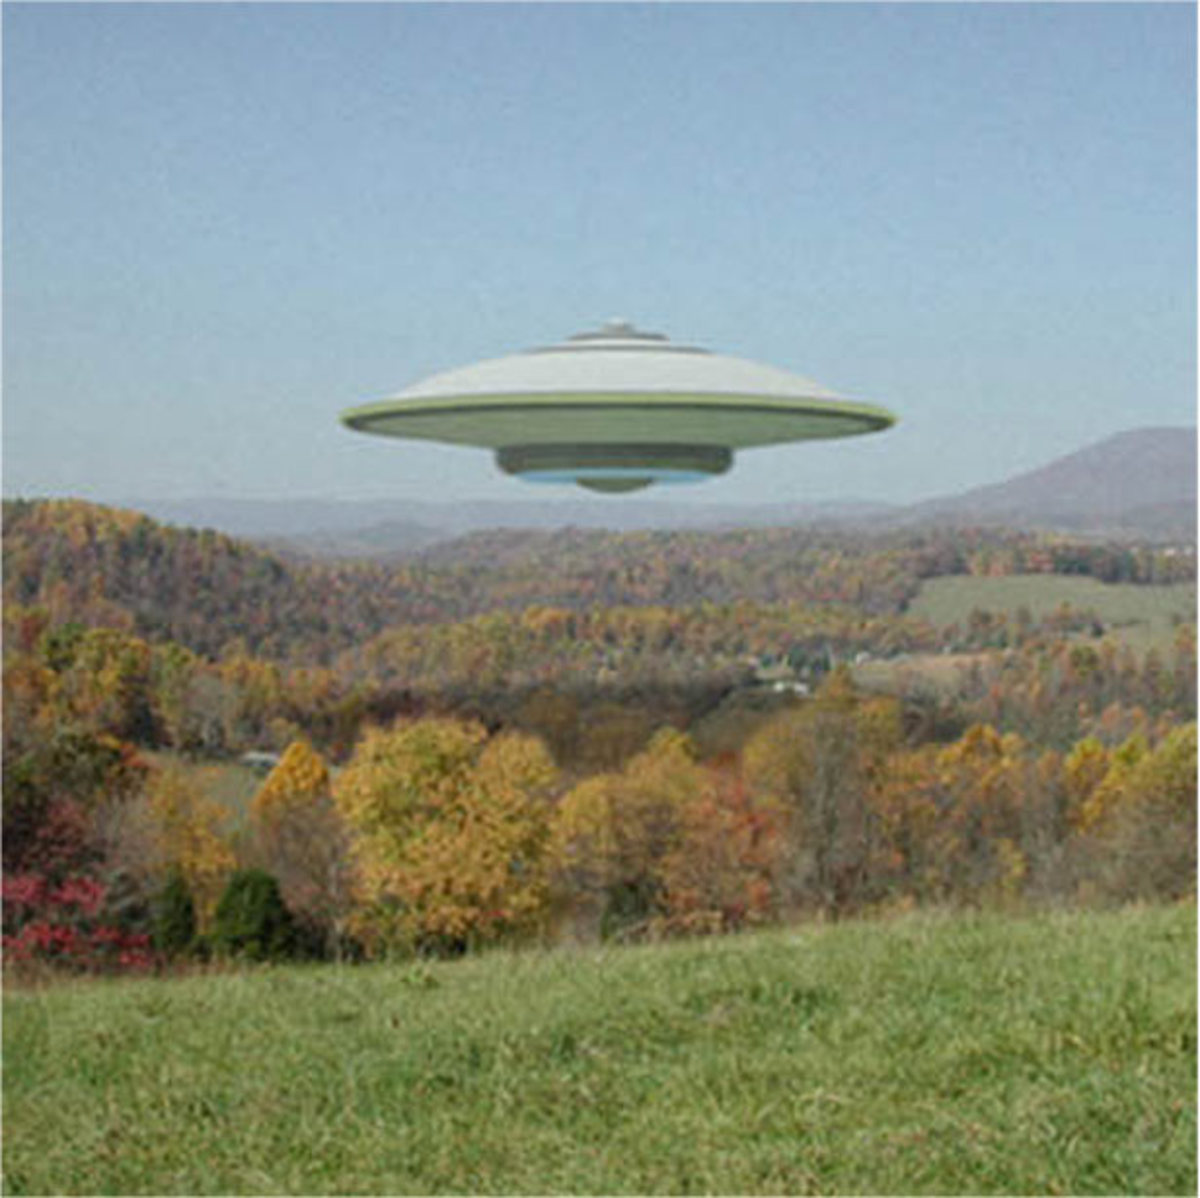 Is this a photo of a real UFO?